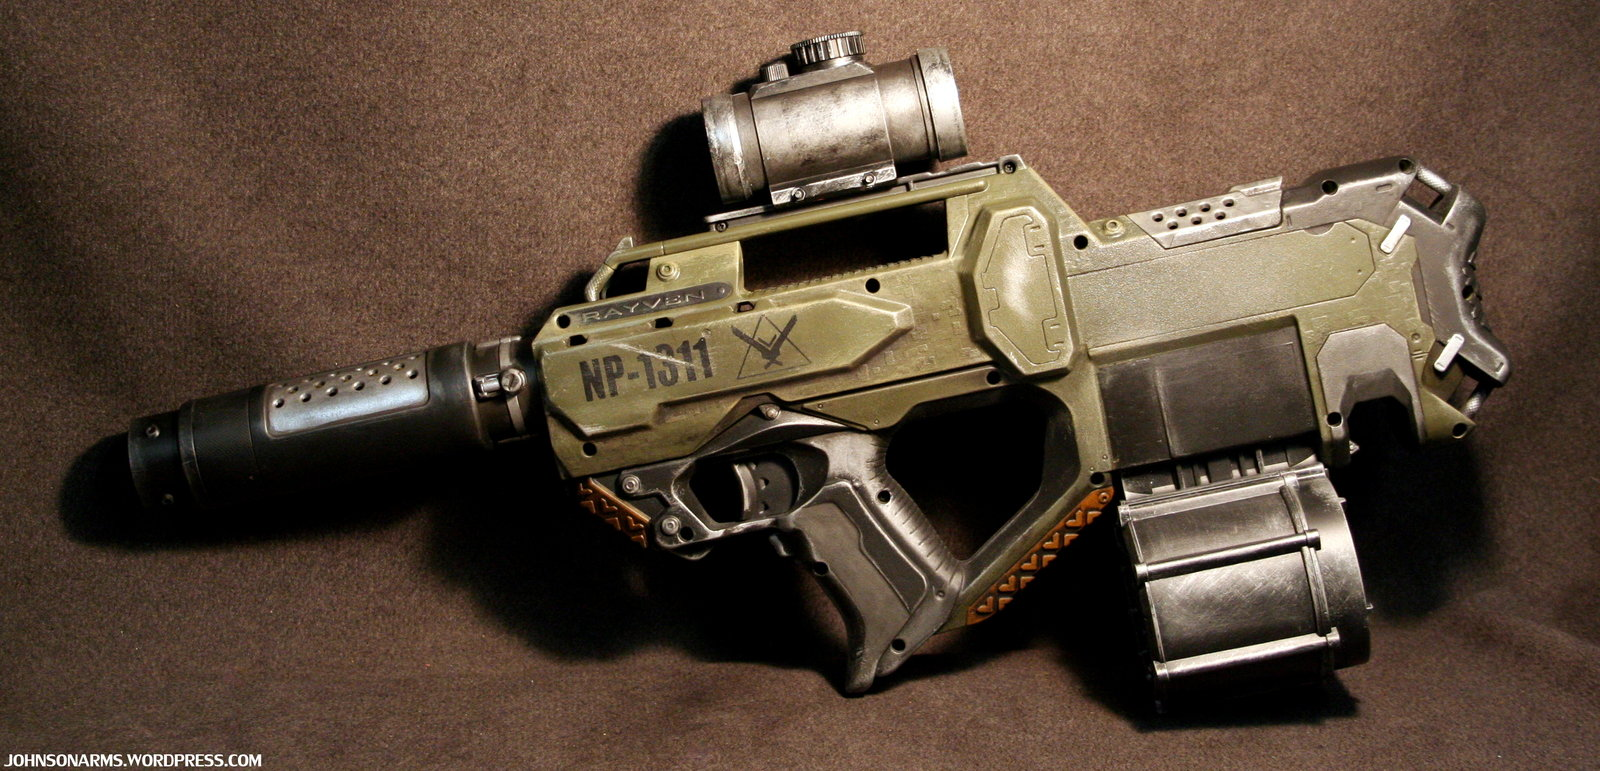 The Best Nerf Guns for Custom Painting and Modding - Tested